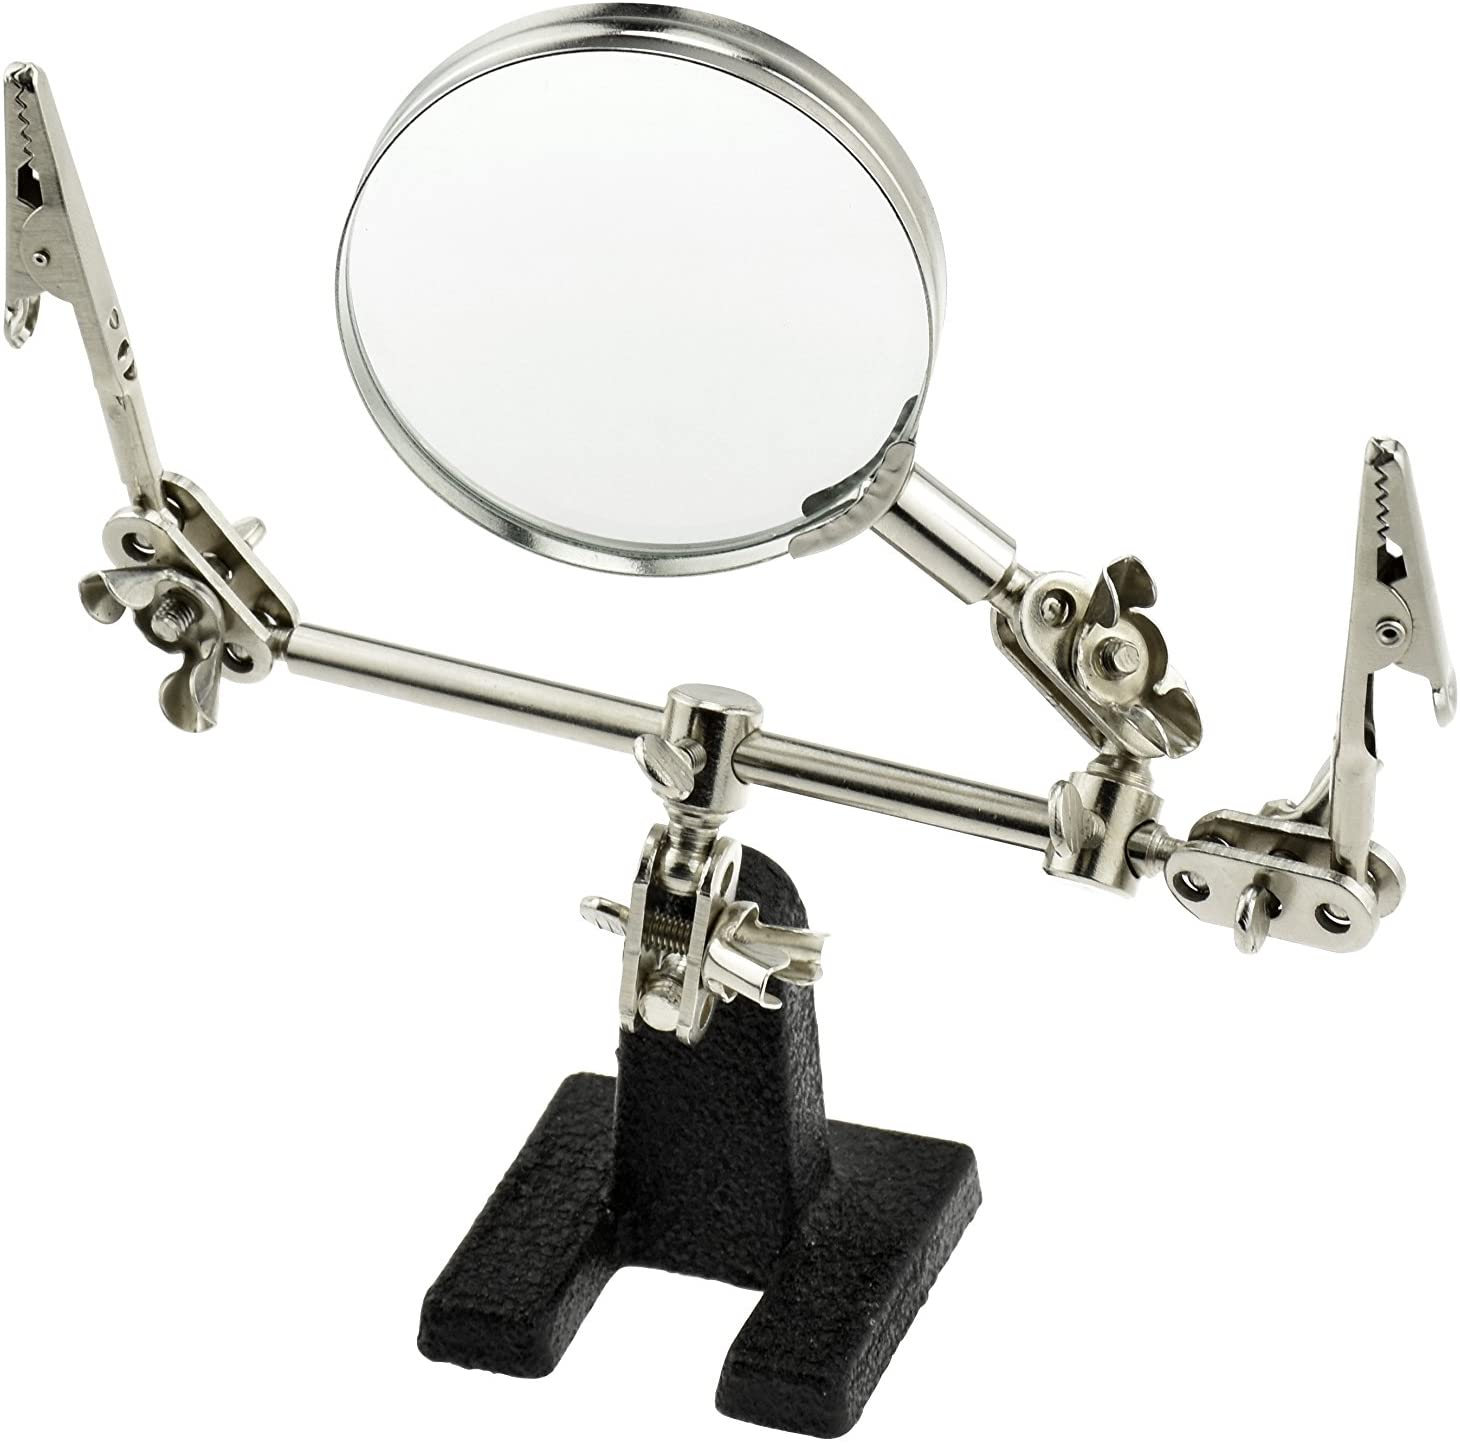 SE Helping Hand with Magnifying Glass - MZ101B